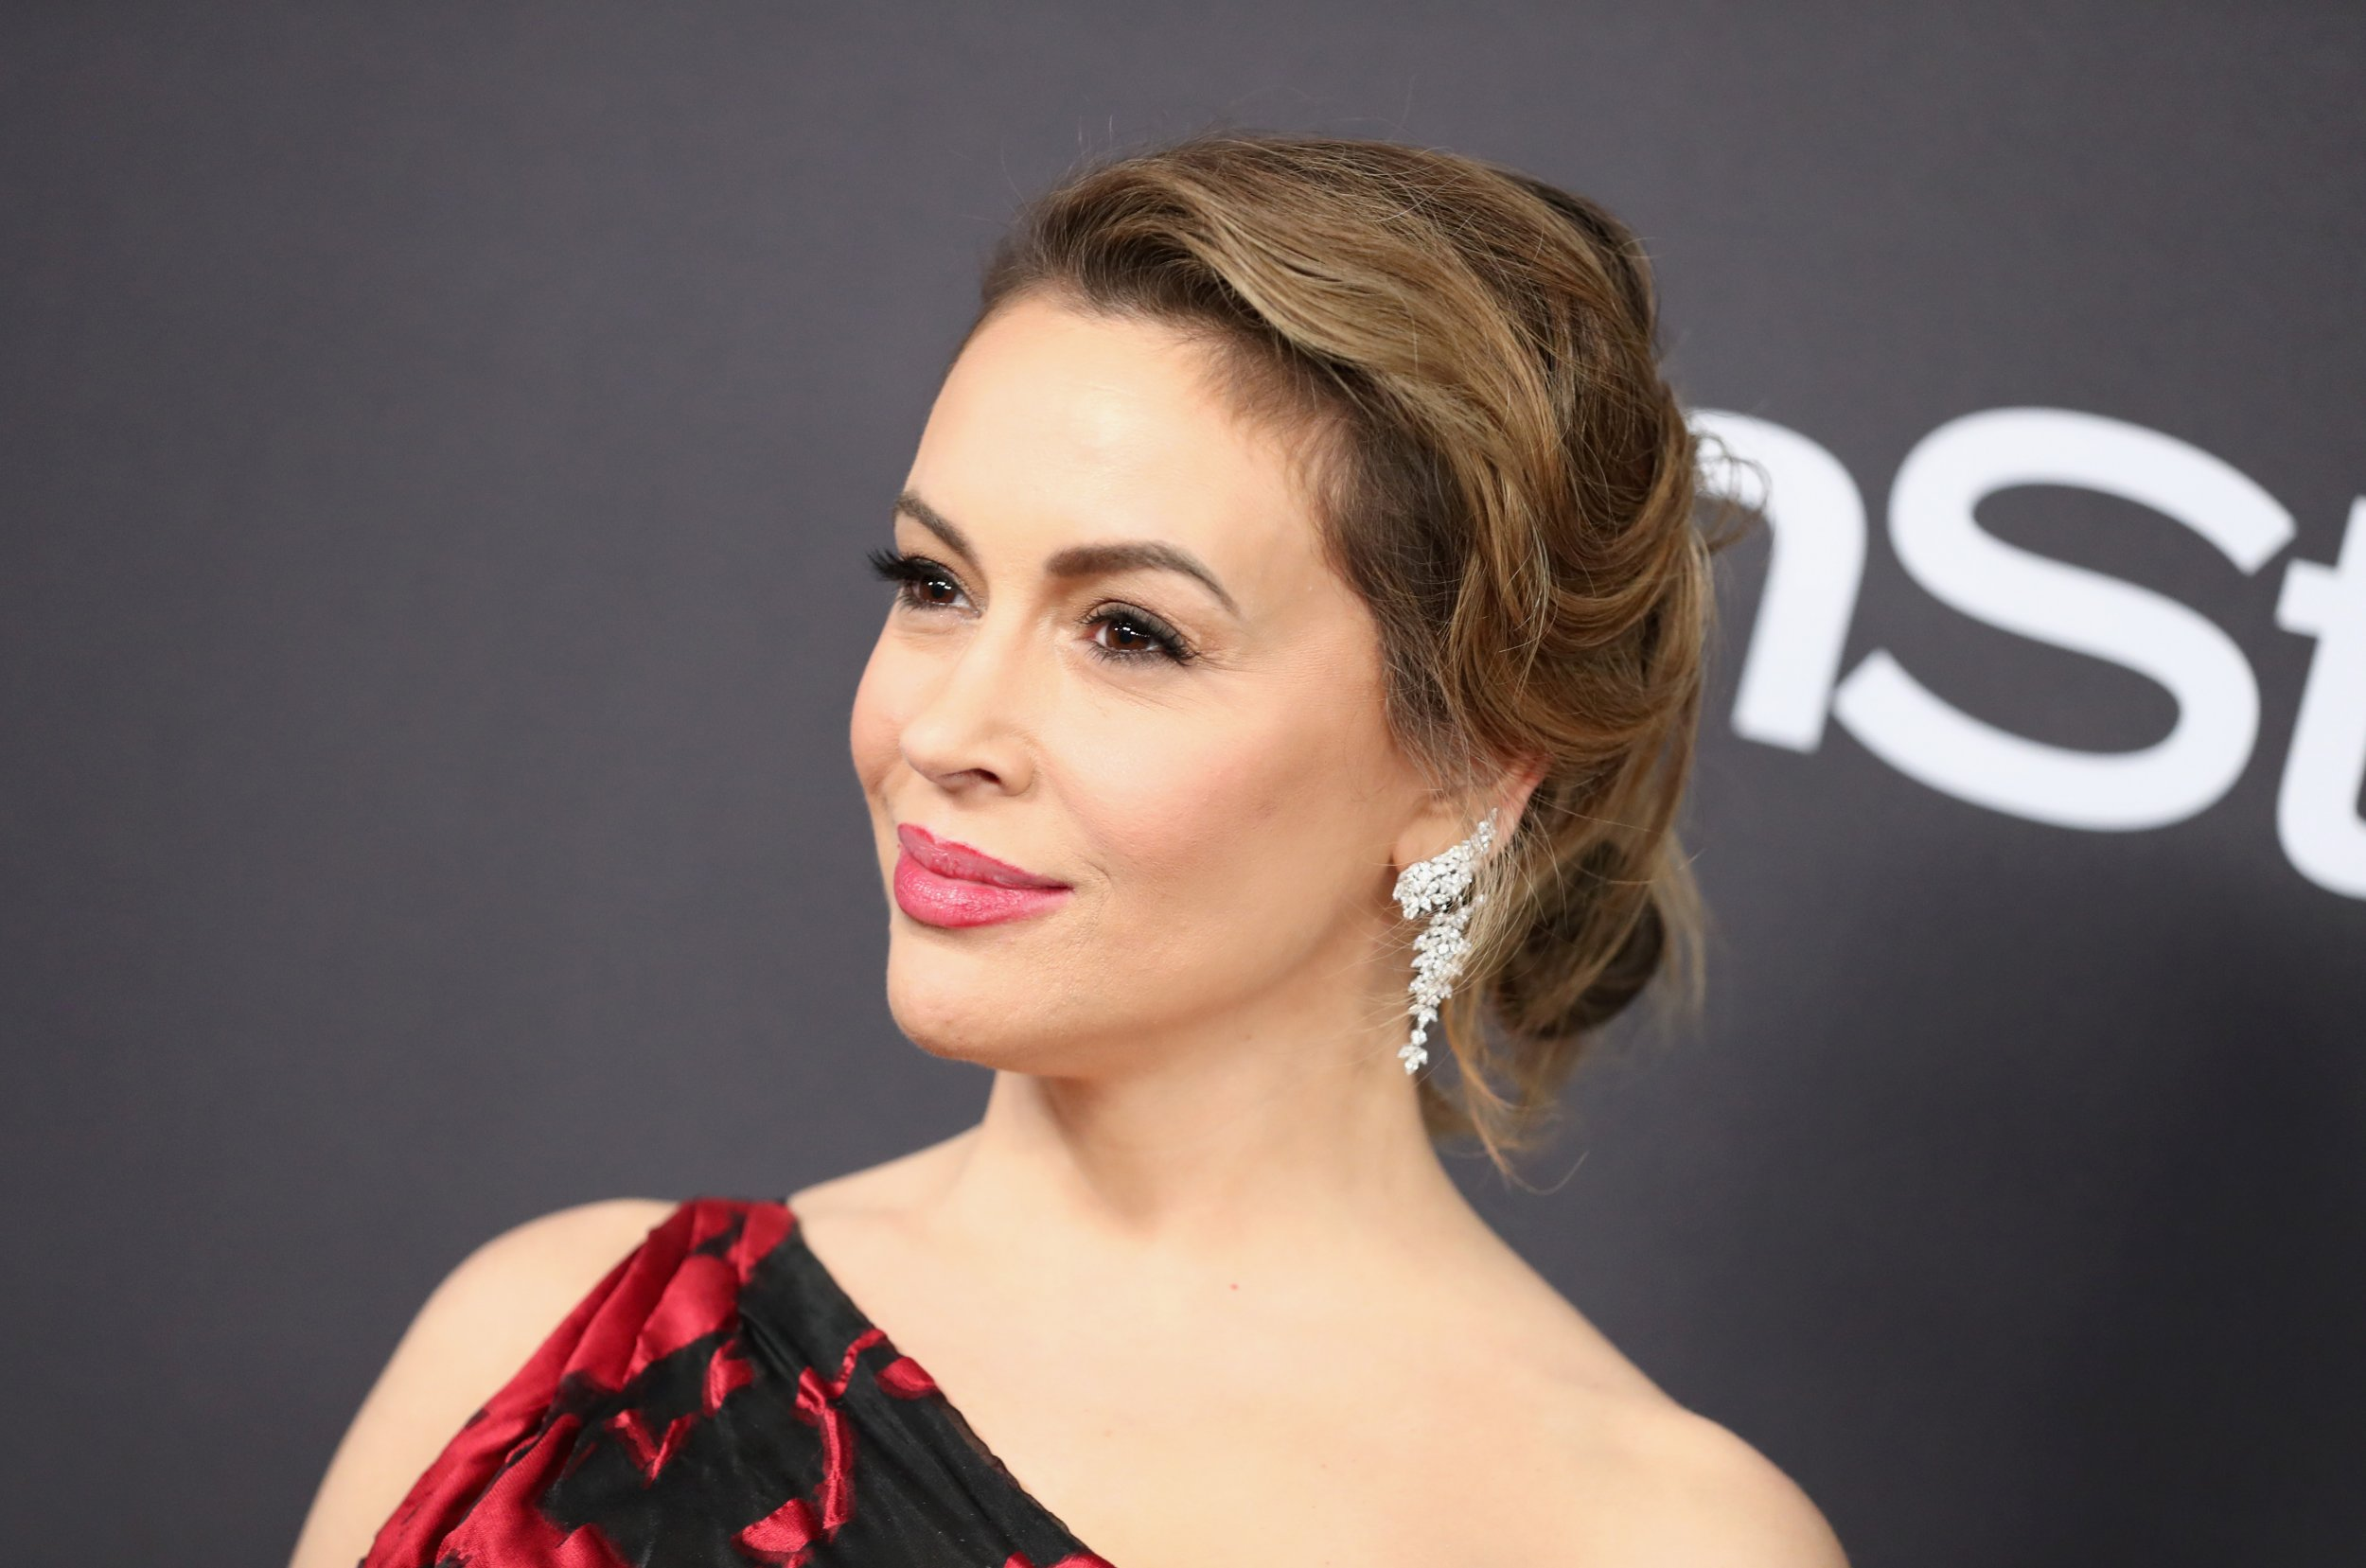 Alyssa Milano on 'Sorry Not Sorry' Podcast